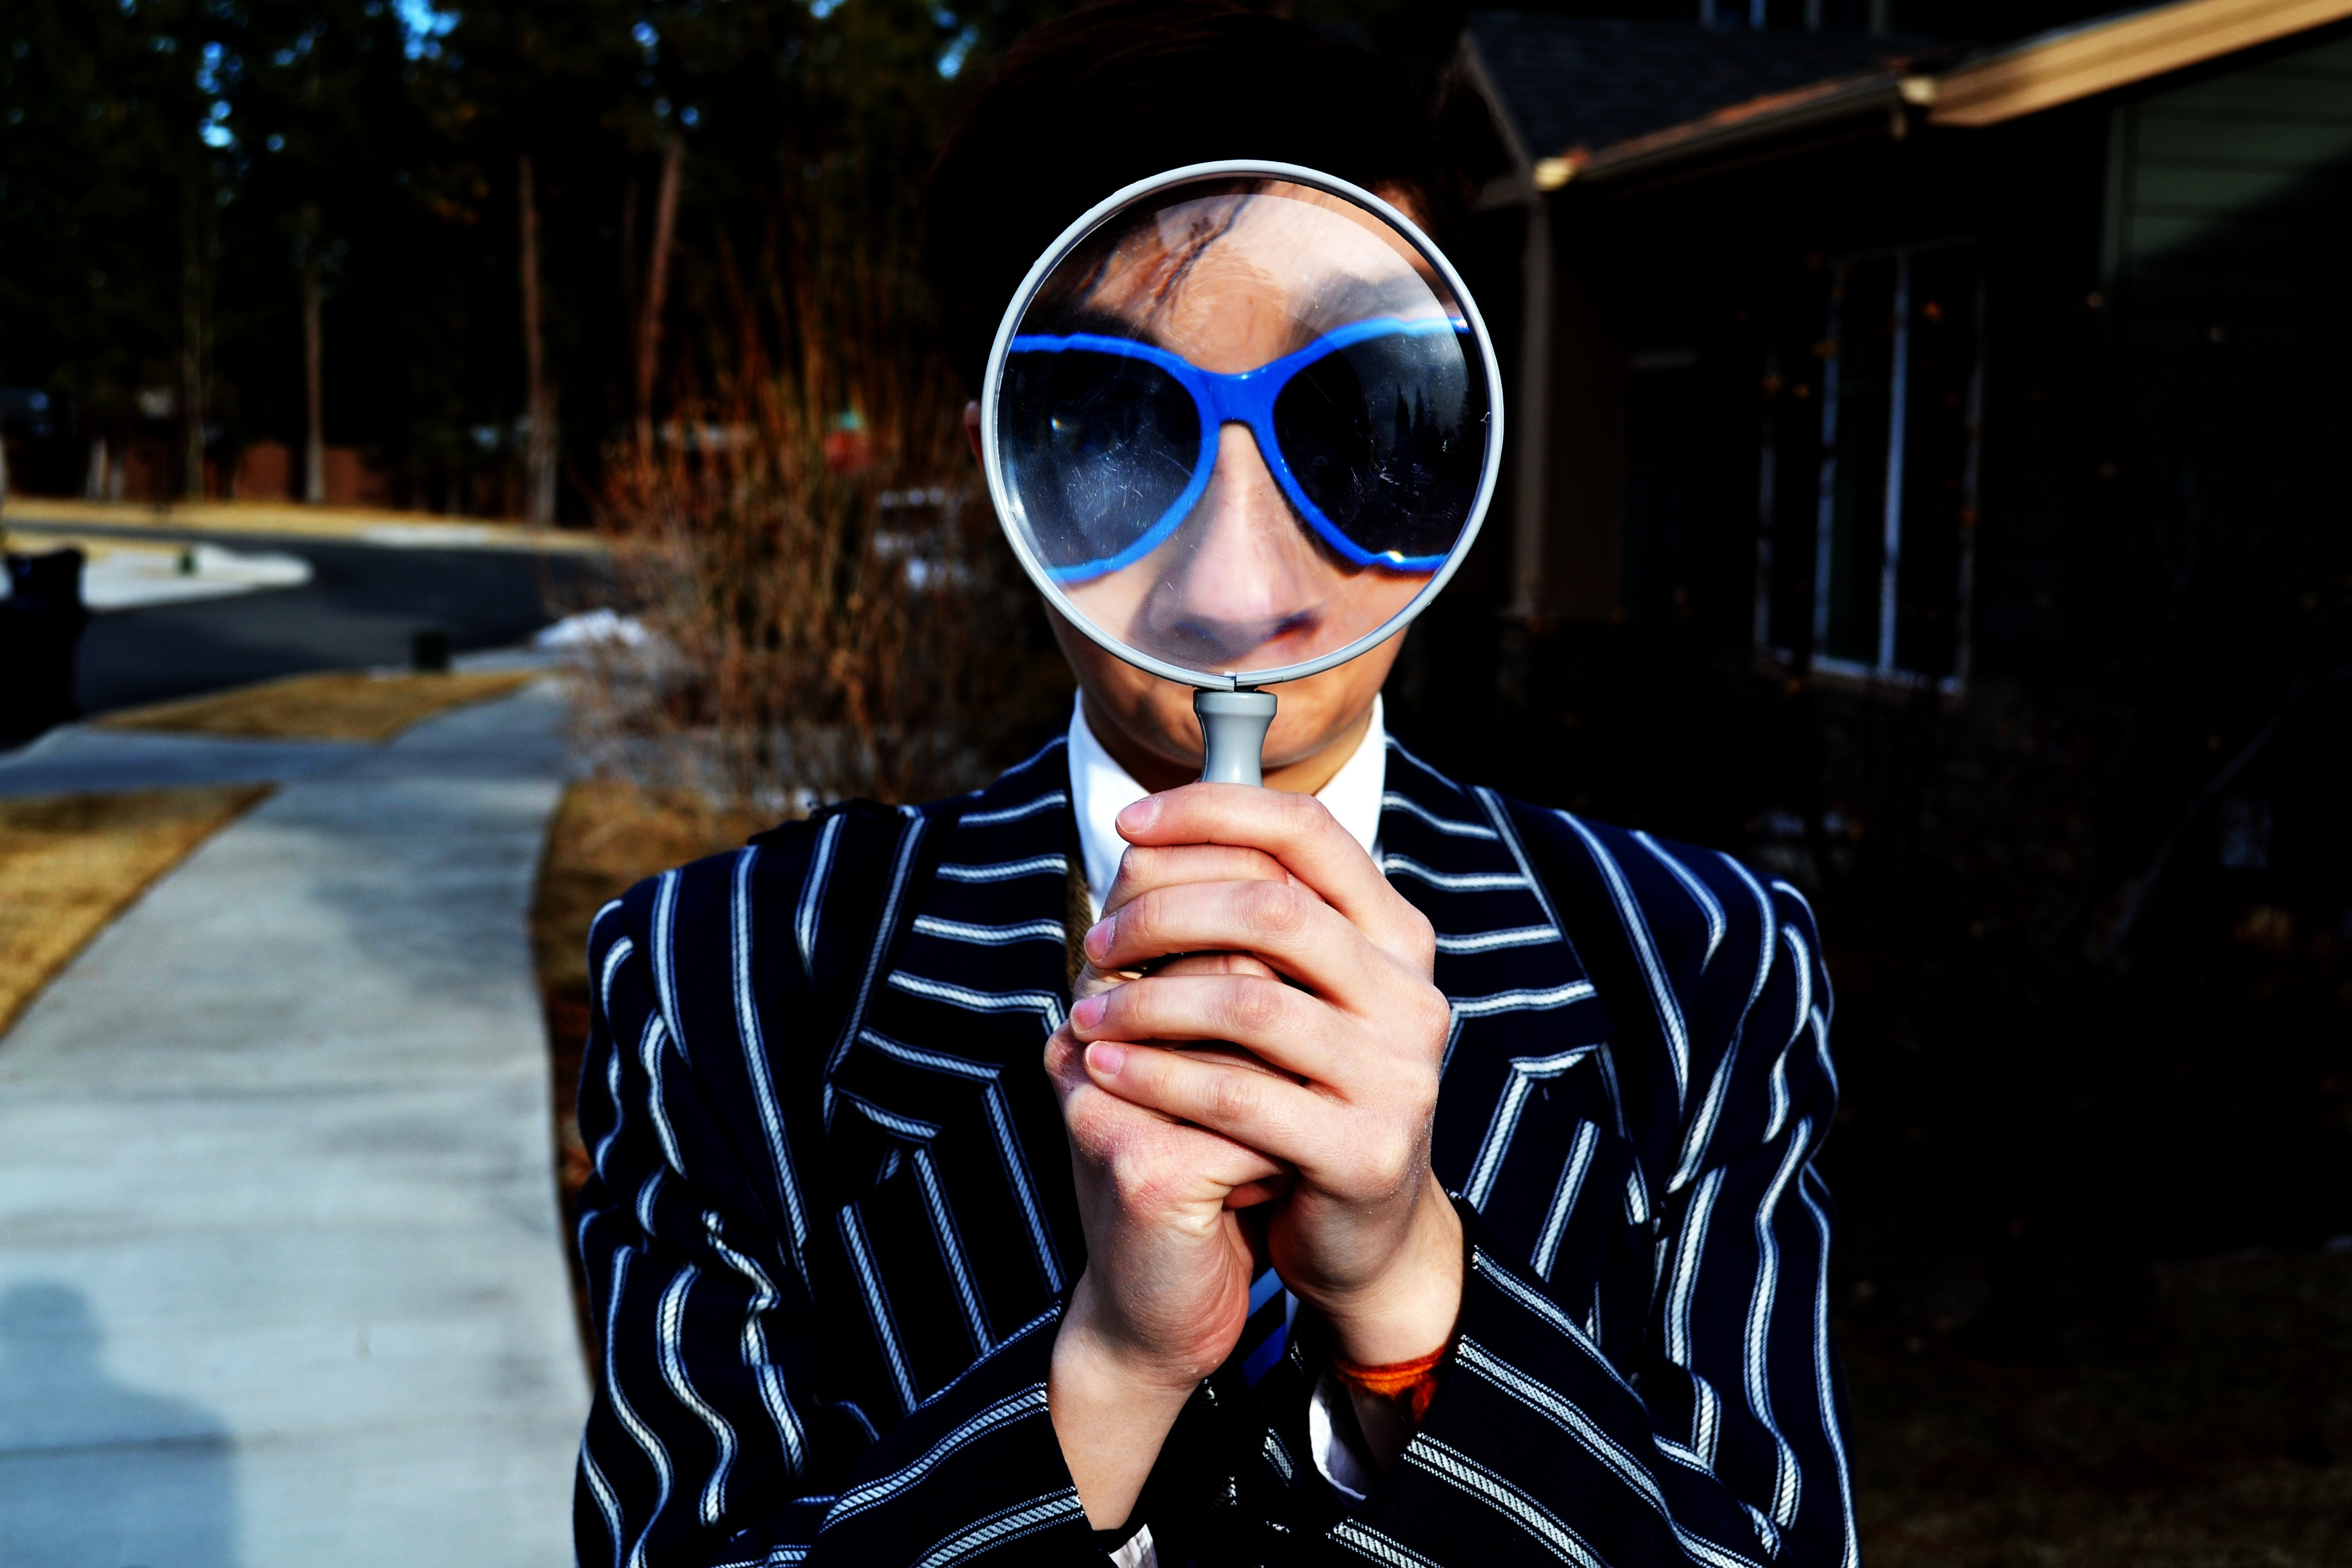 Blog analytics - a person with a magnifying glass